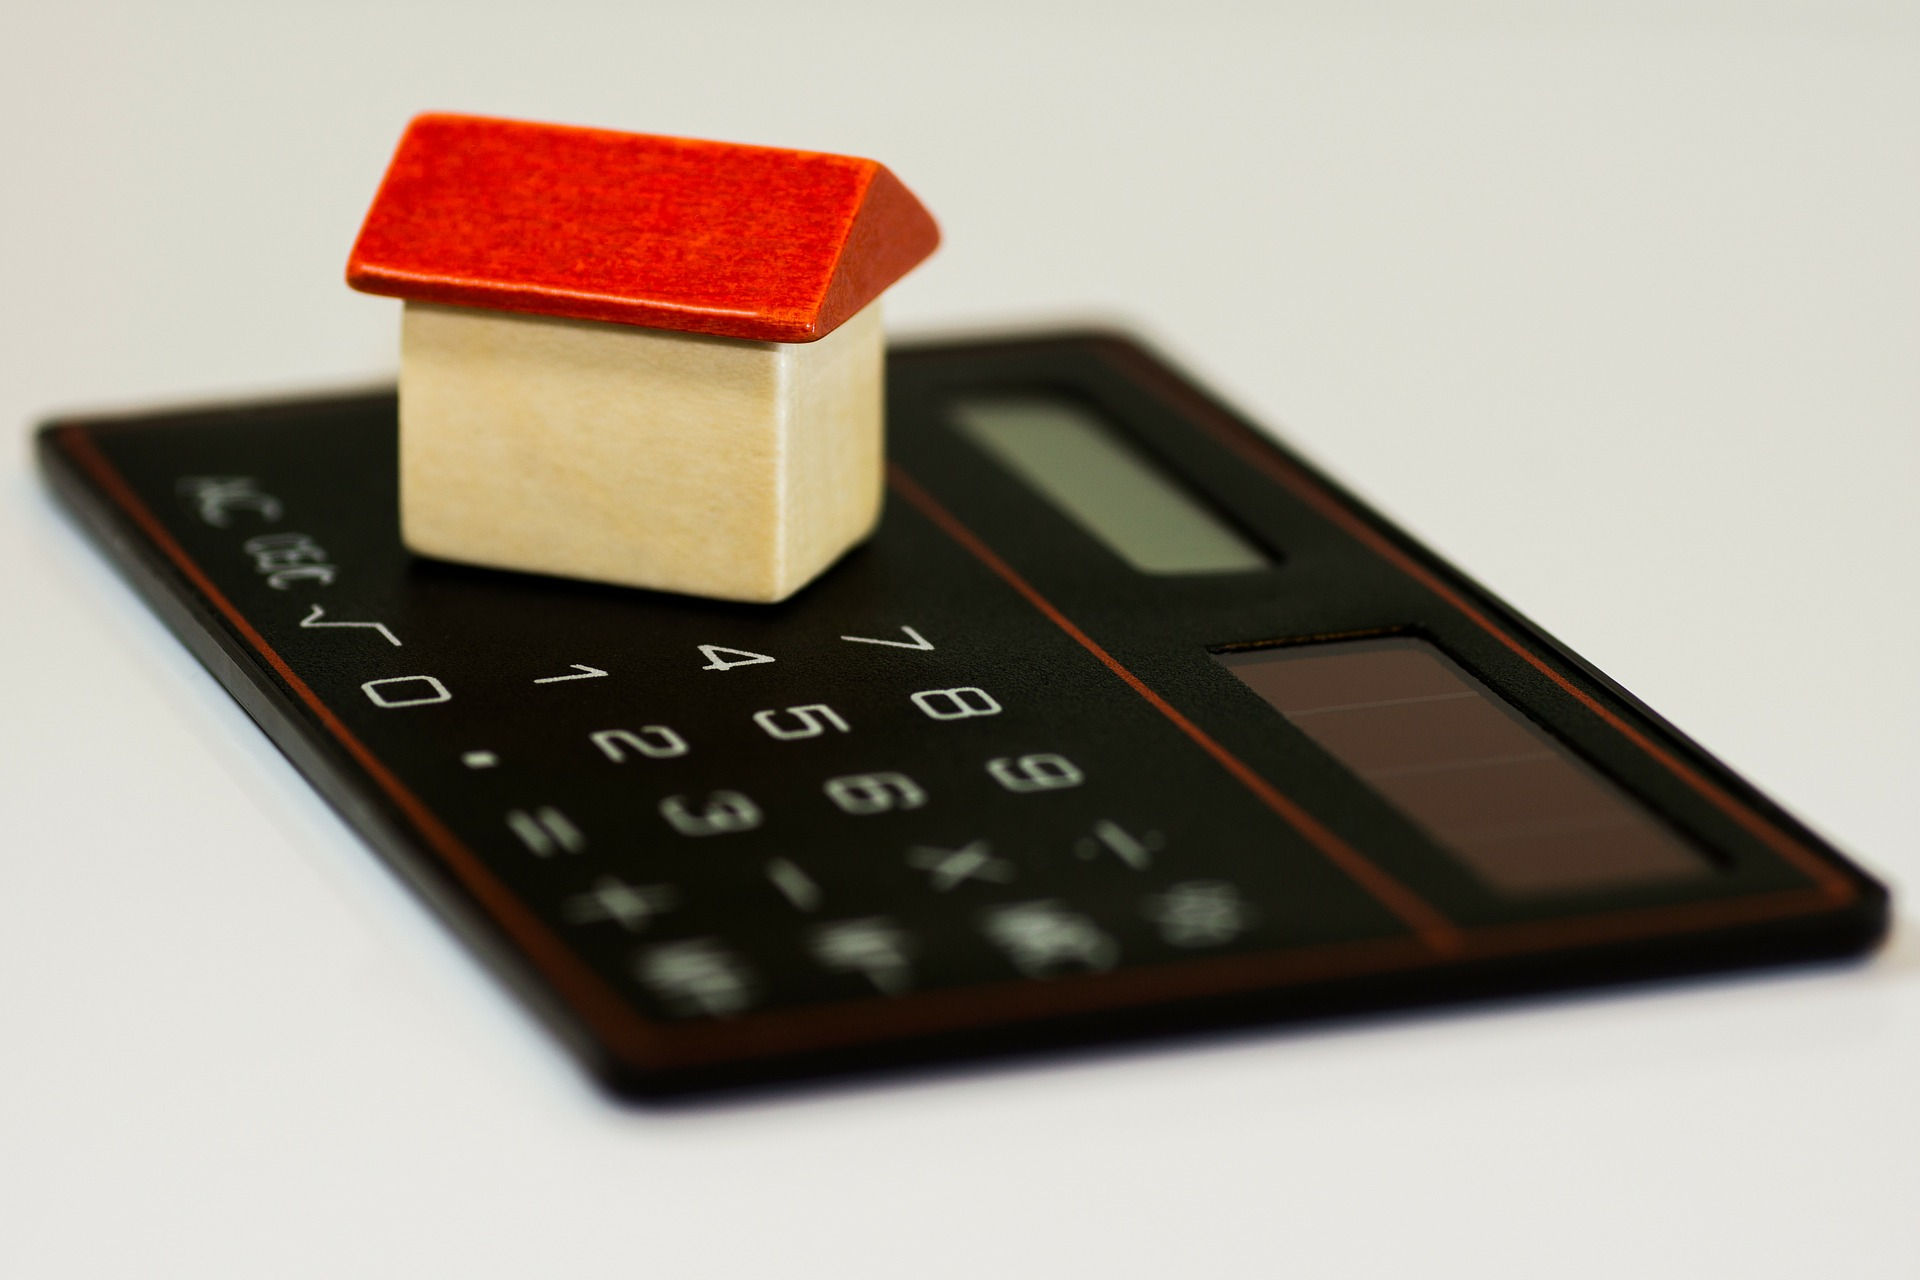 THE TEN KEYS TO THE MORTGAGE LAW